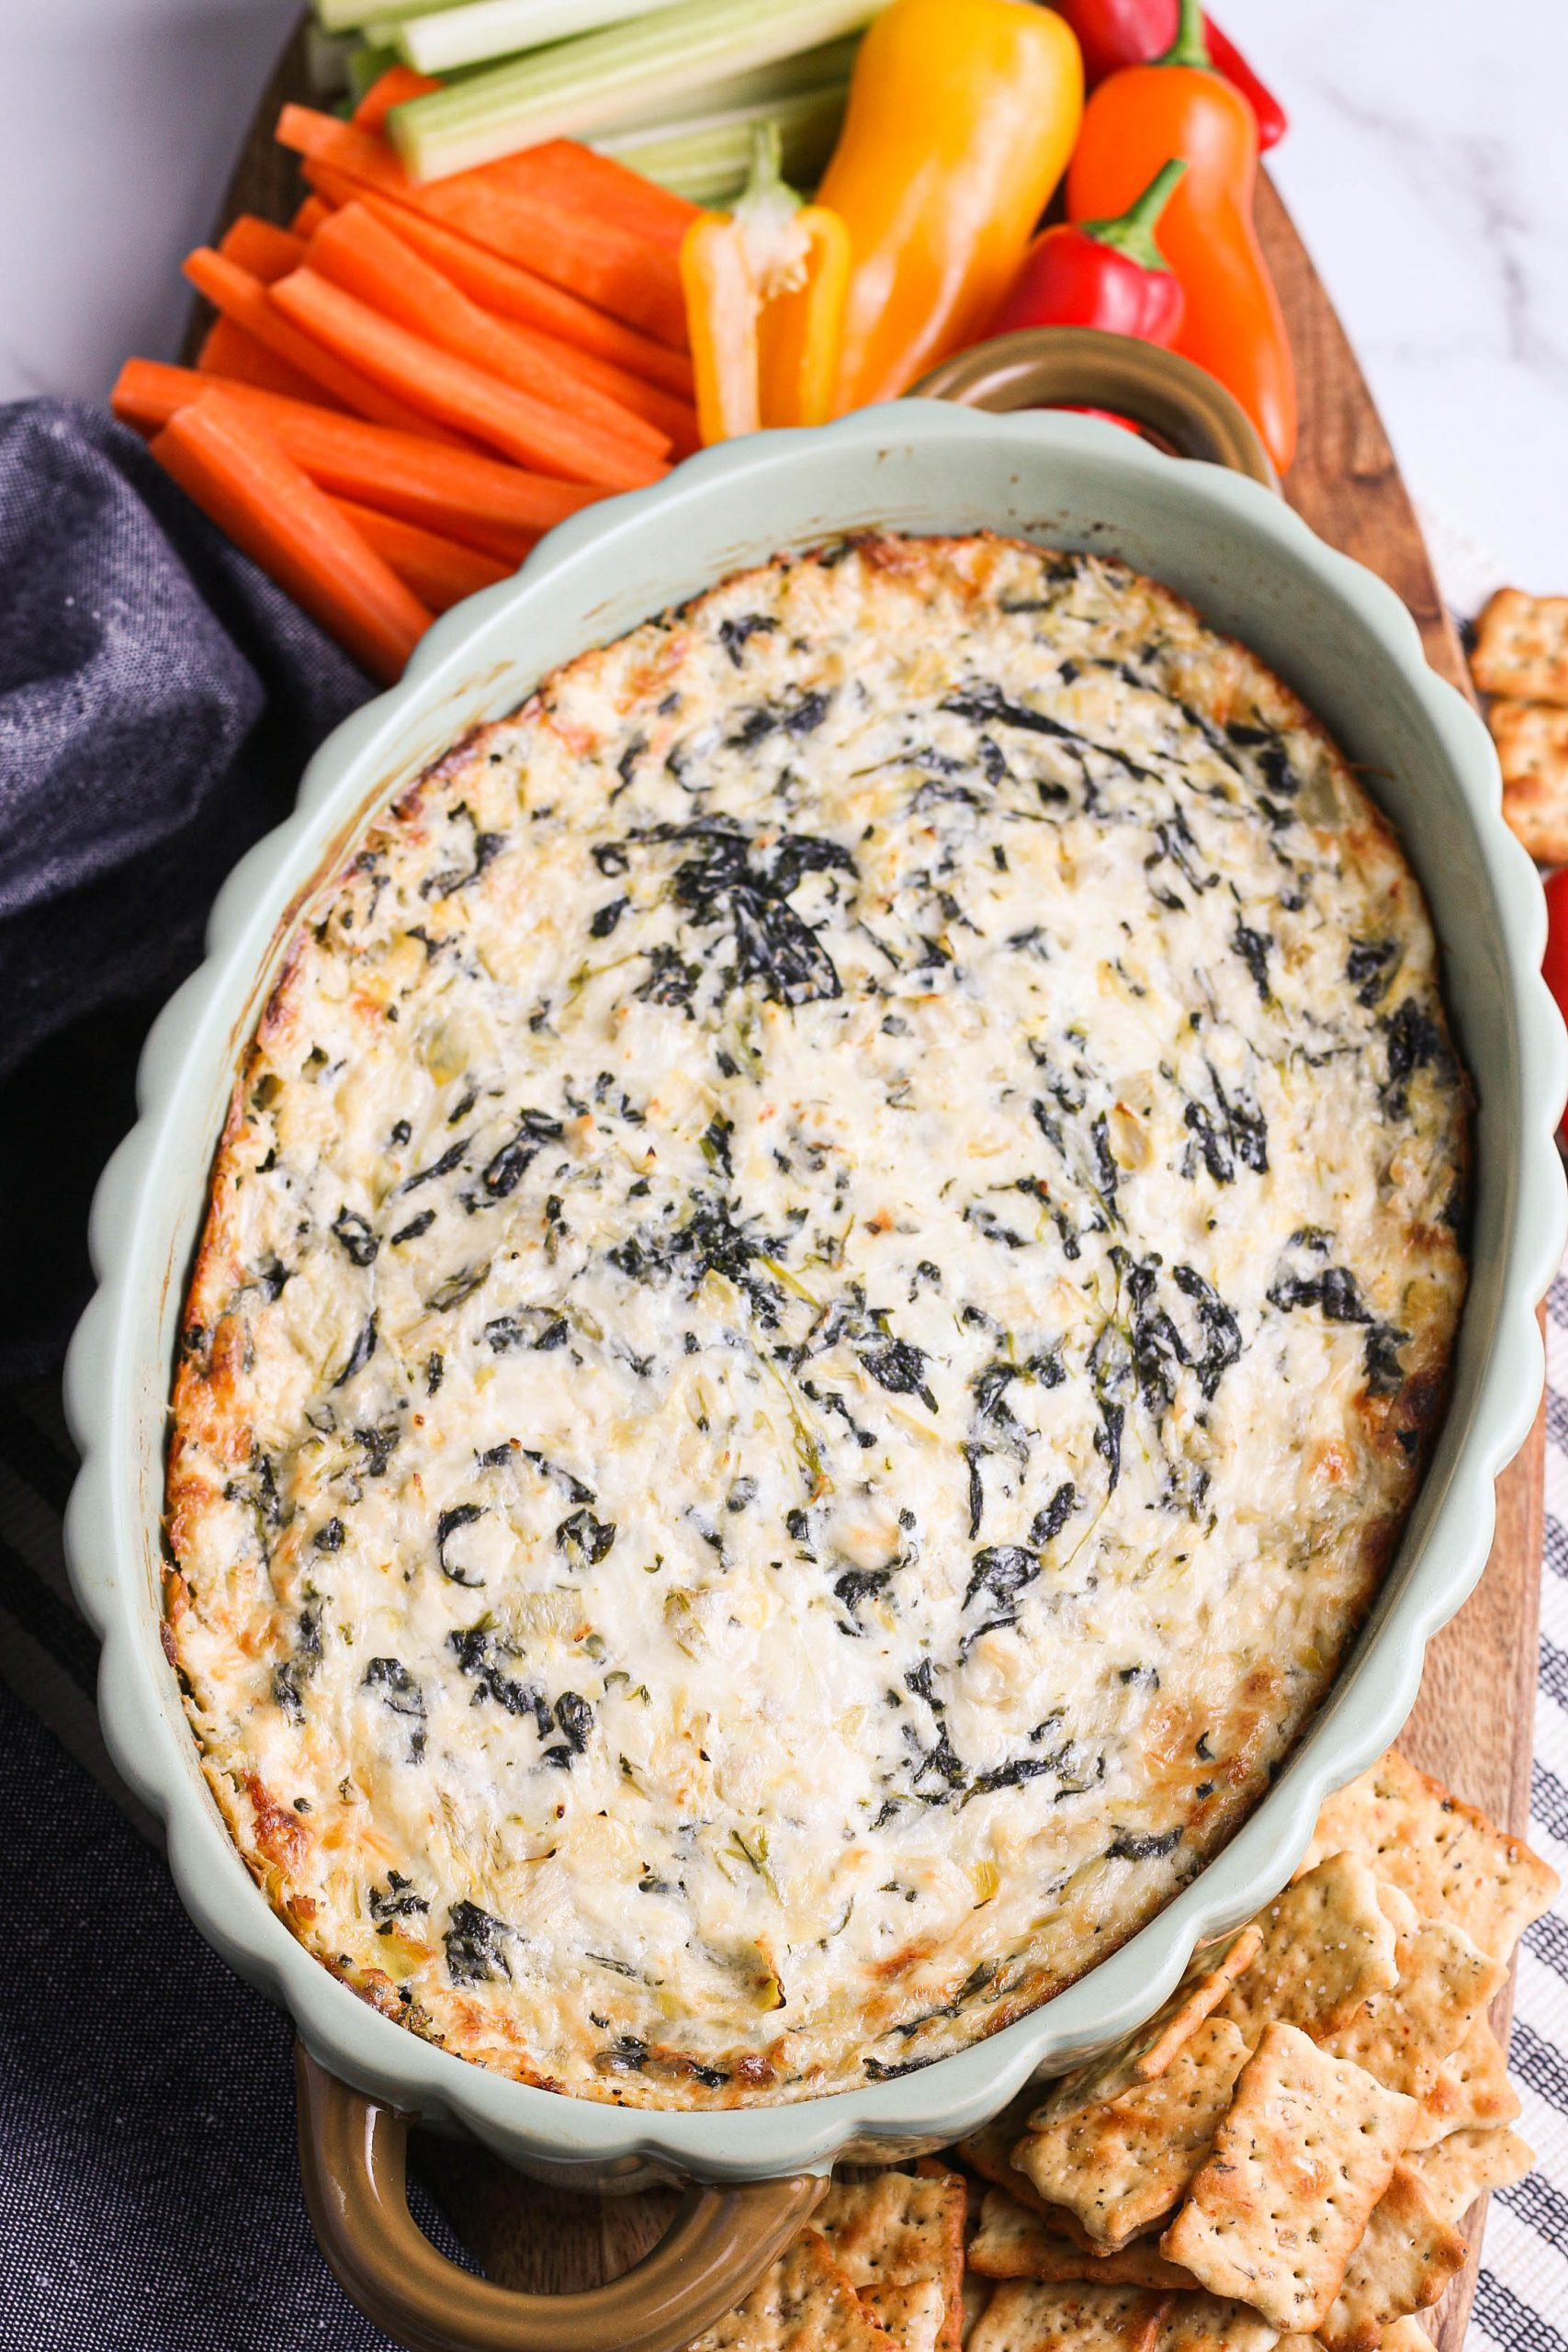 Spinach artichoke dip in light green dish with crackers, vegetables on a wood and marble background